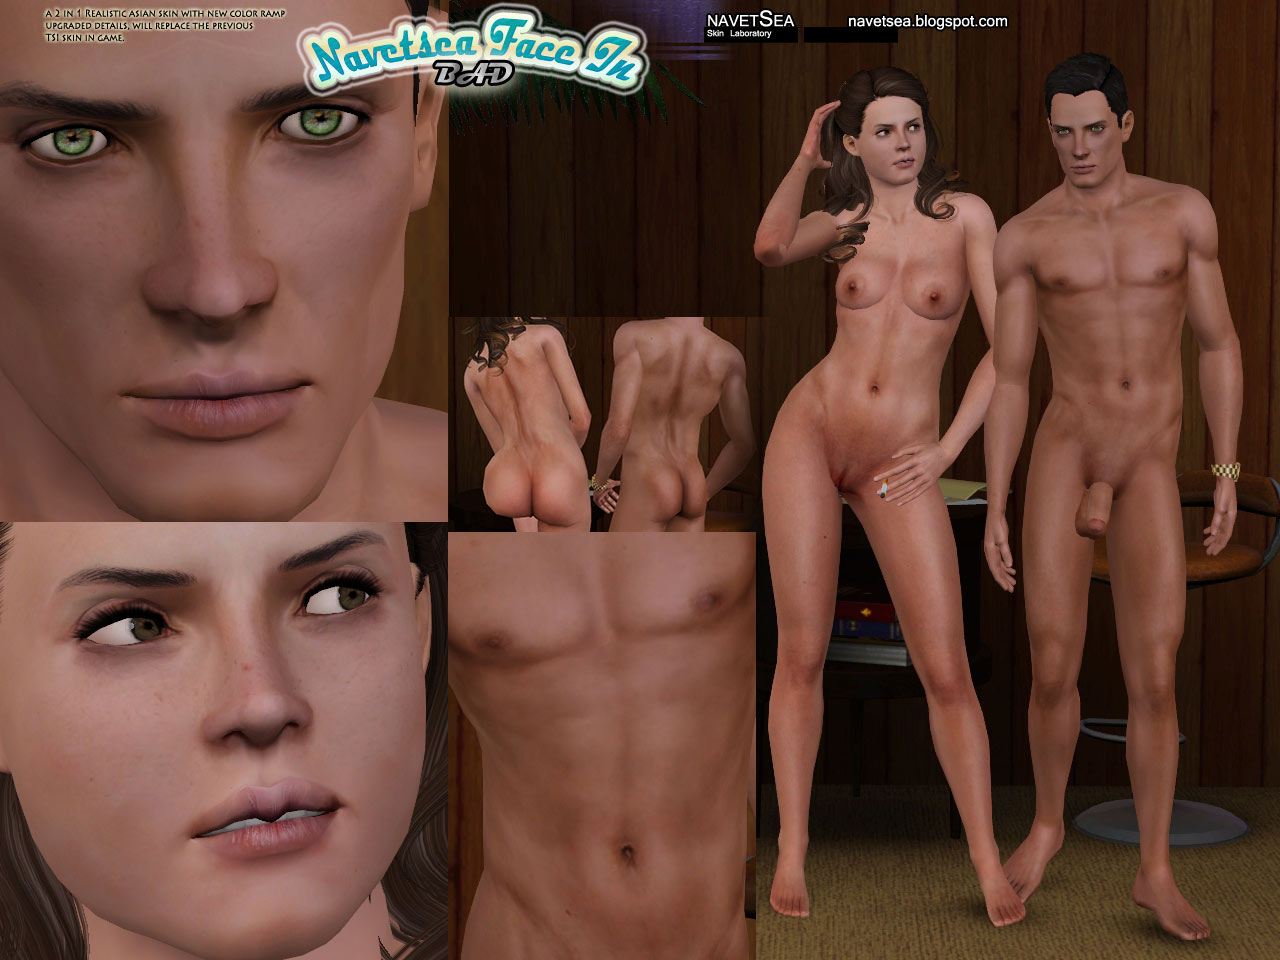 Nude anatomically male and female sims sex lesbain porn star